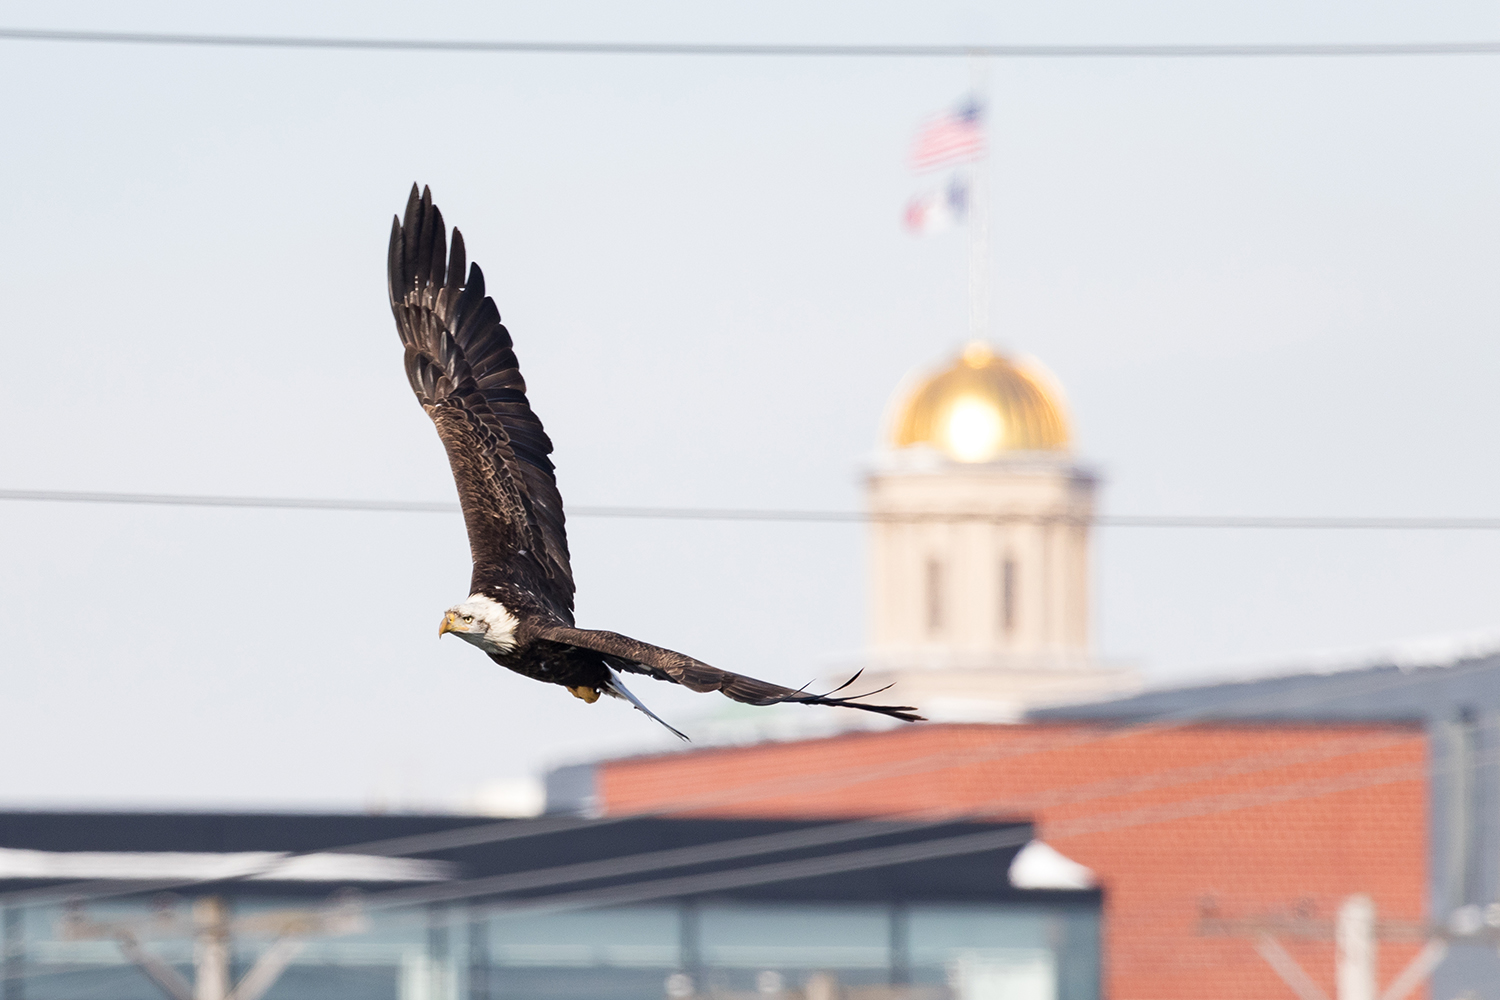 A bald eagle soars in front of the Old Capitol building in Iowa City on Friday, Feb. 1, 2019.